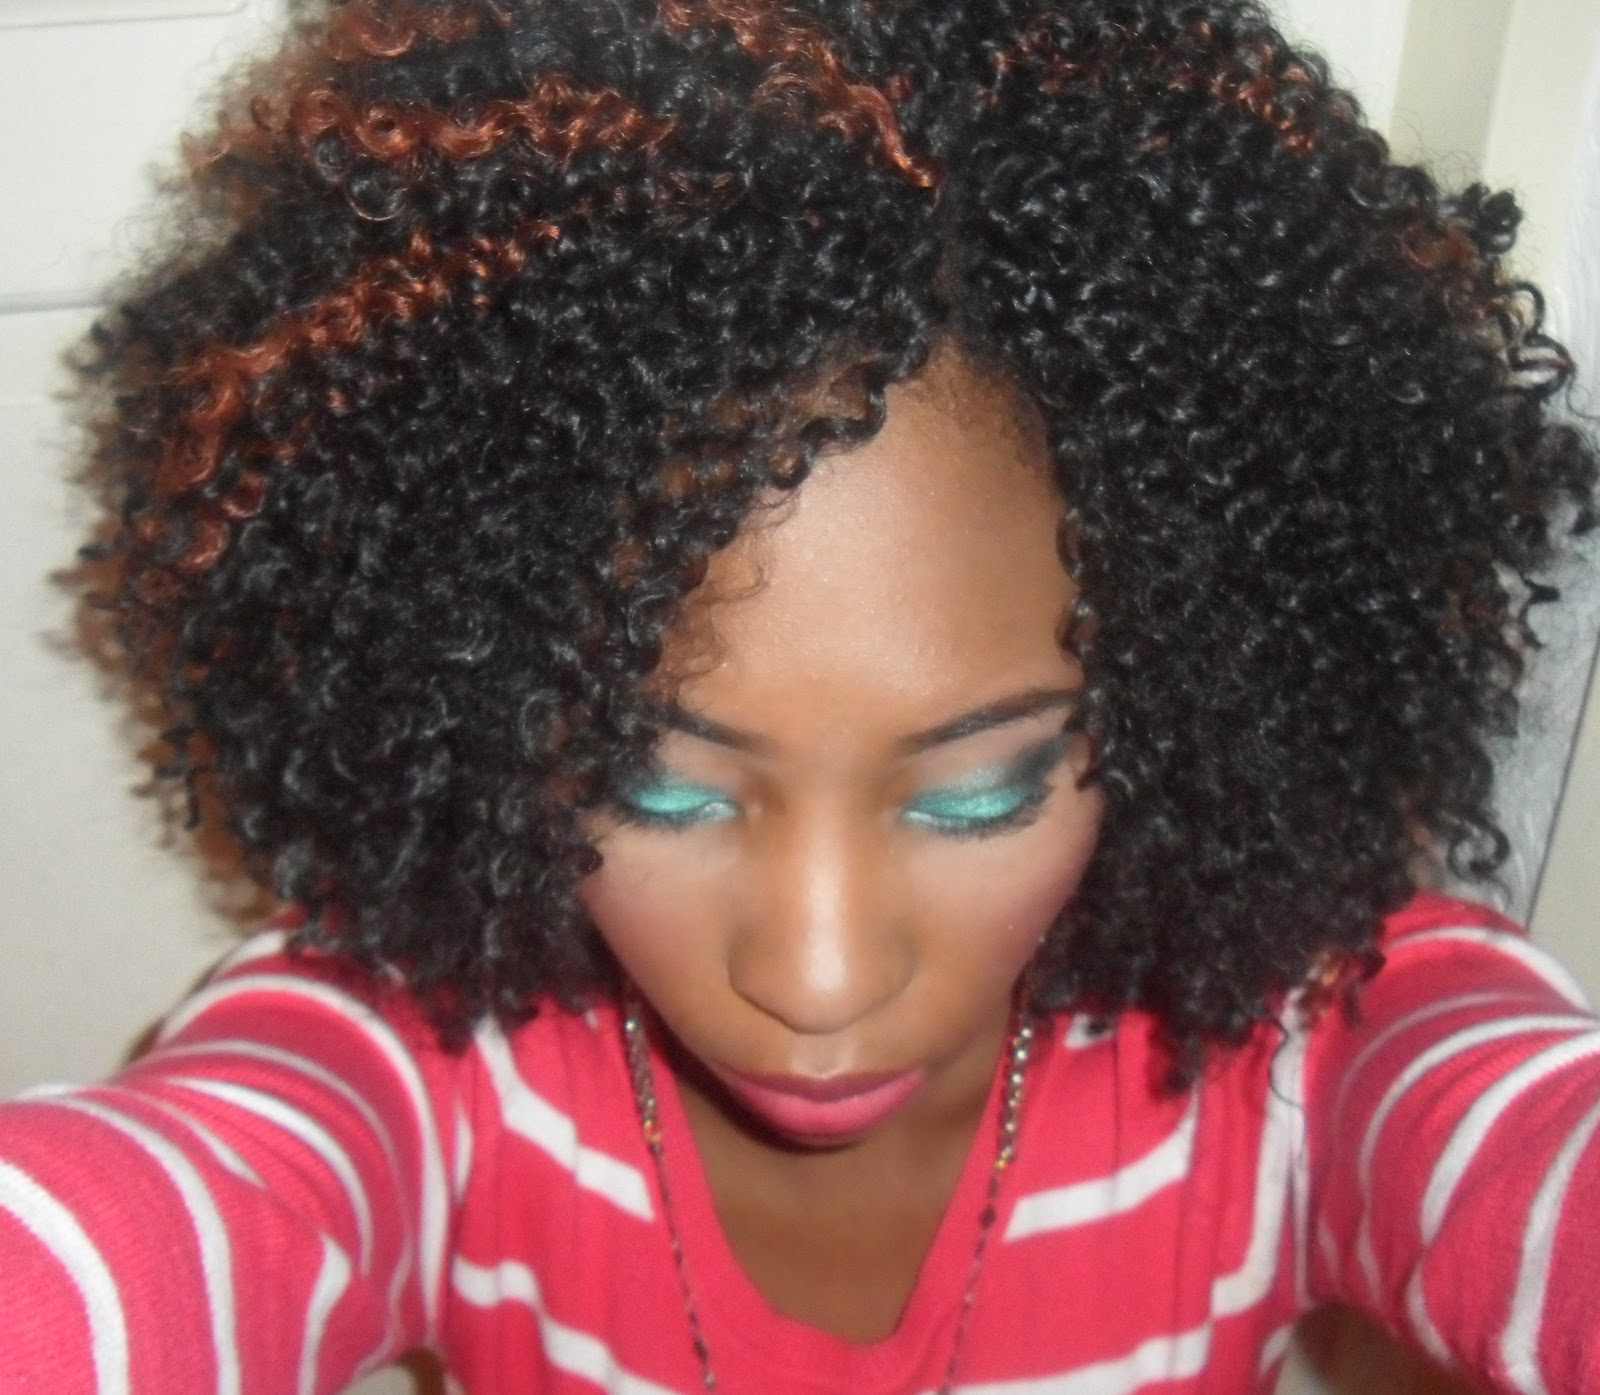 Crochet Hair Styles Pics : Any questions, e-mail me at nubianpride@live.co.uk / tweet me @Ray ...